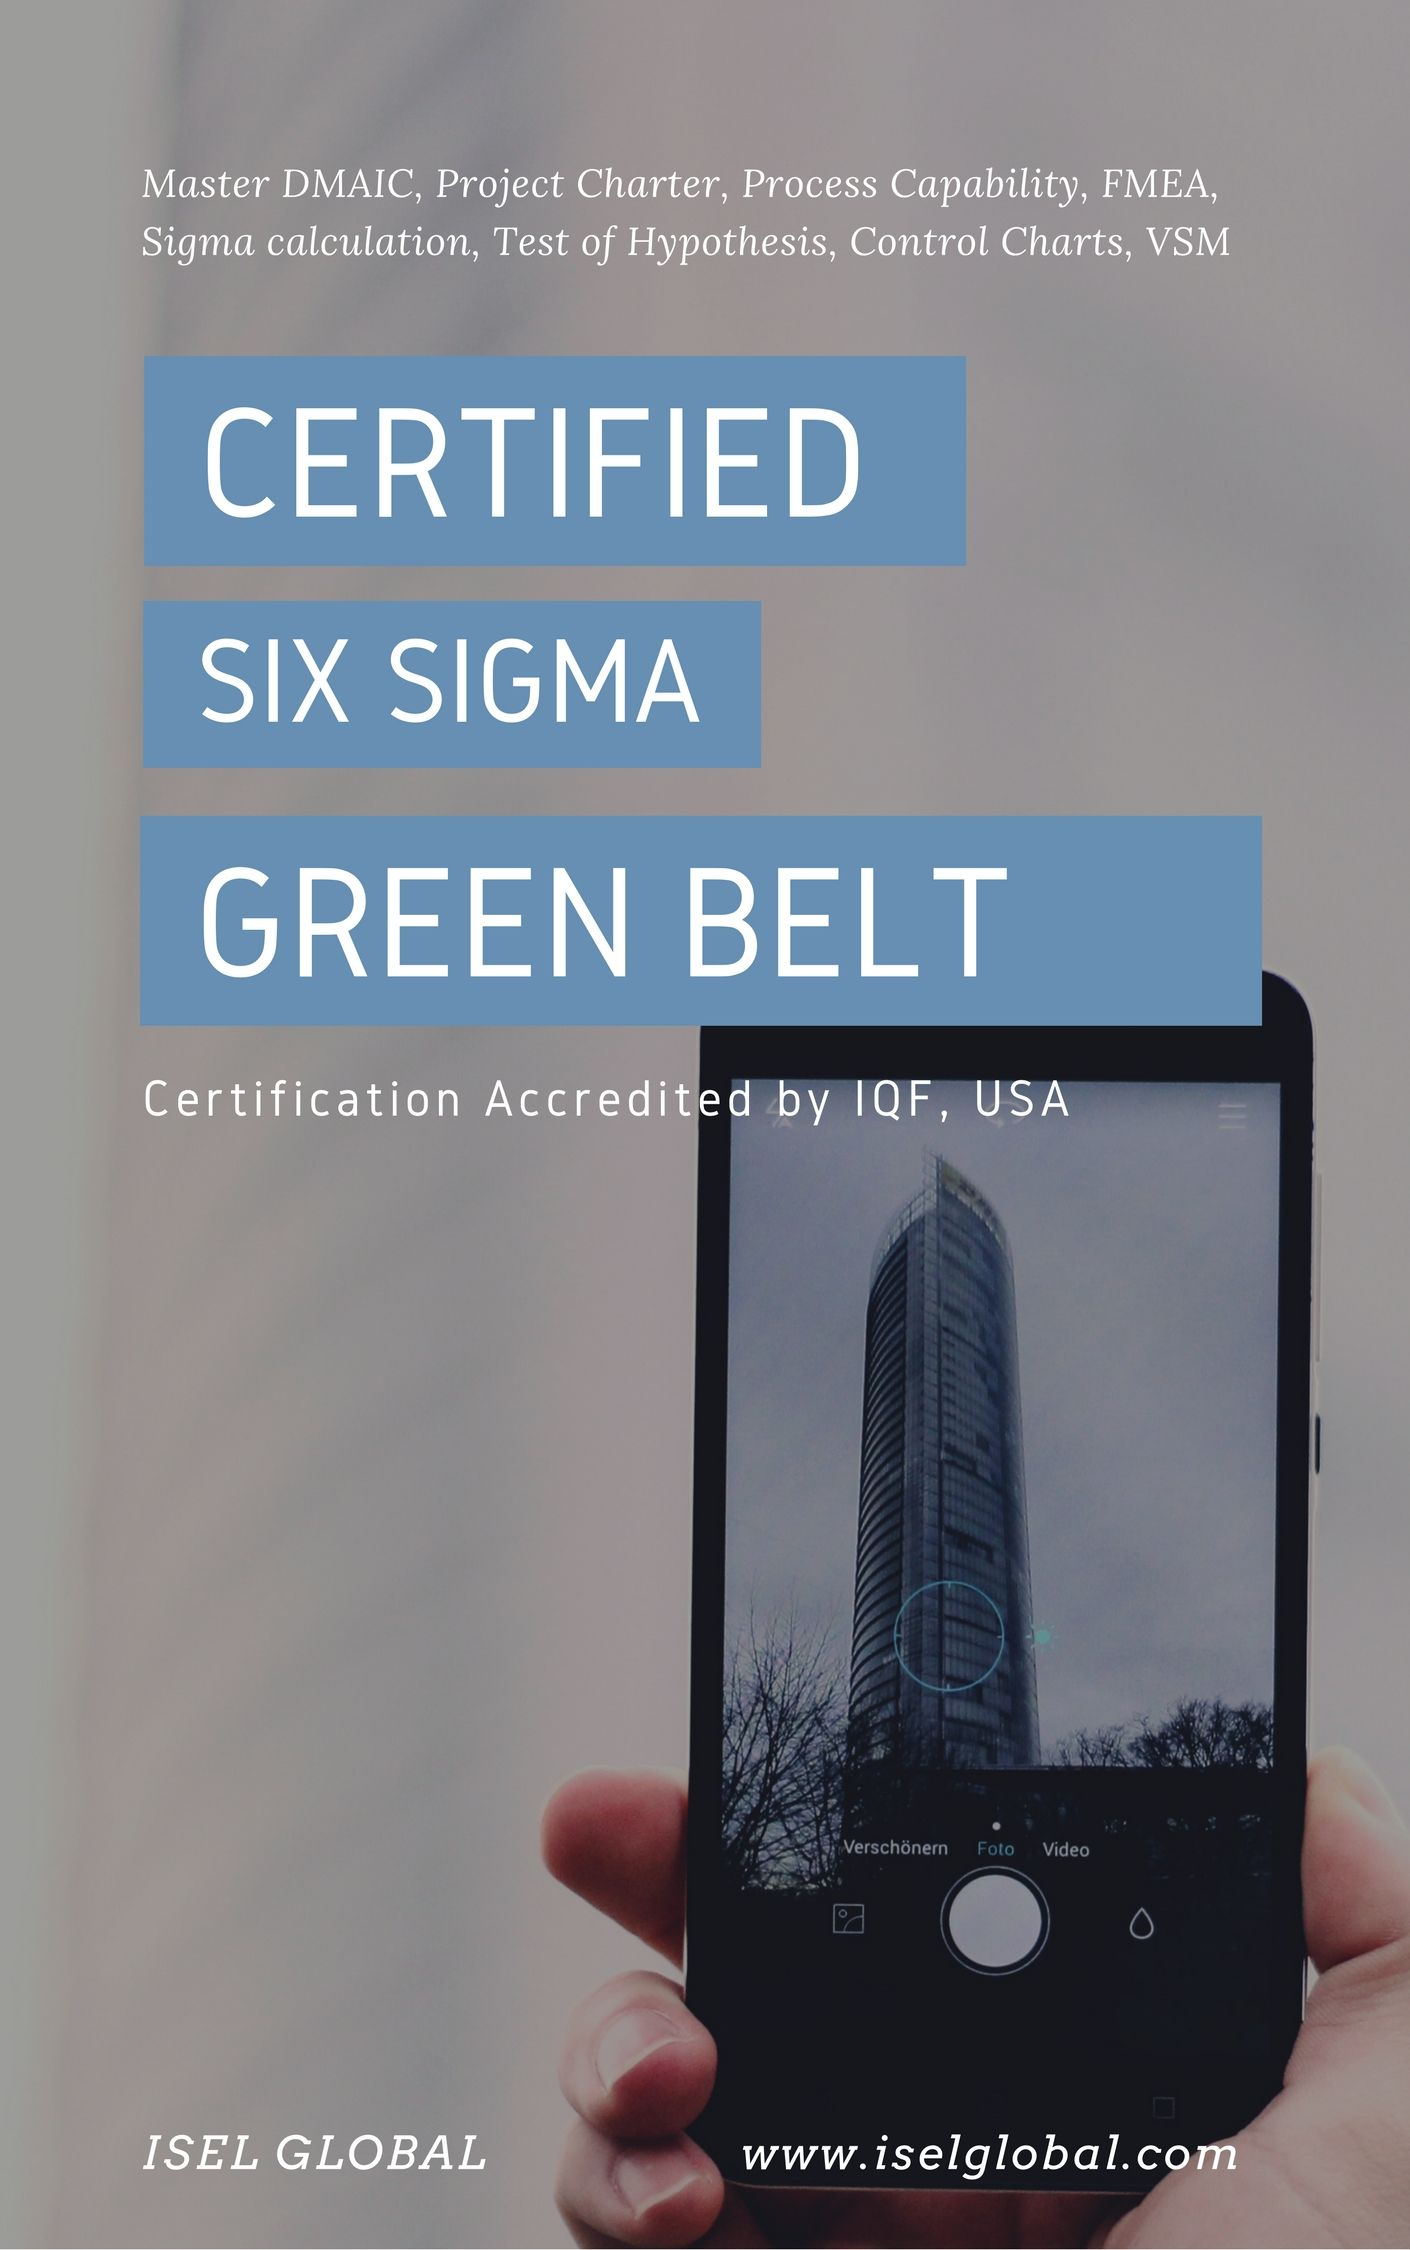 Iselglobal Is Well Known Name For Certified Six Sigma Green Belt